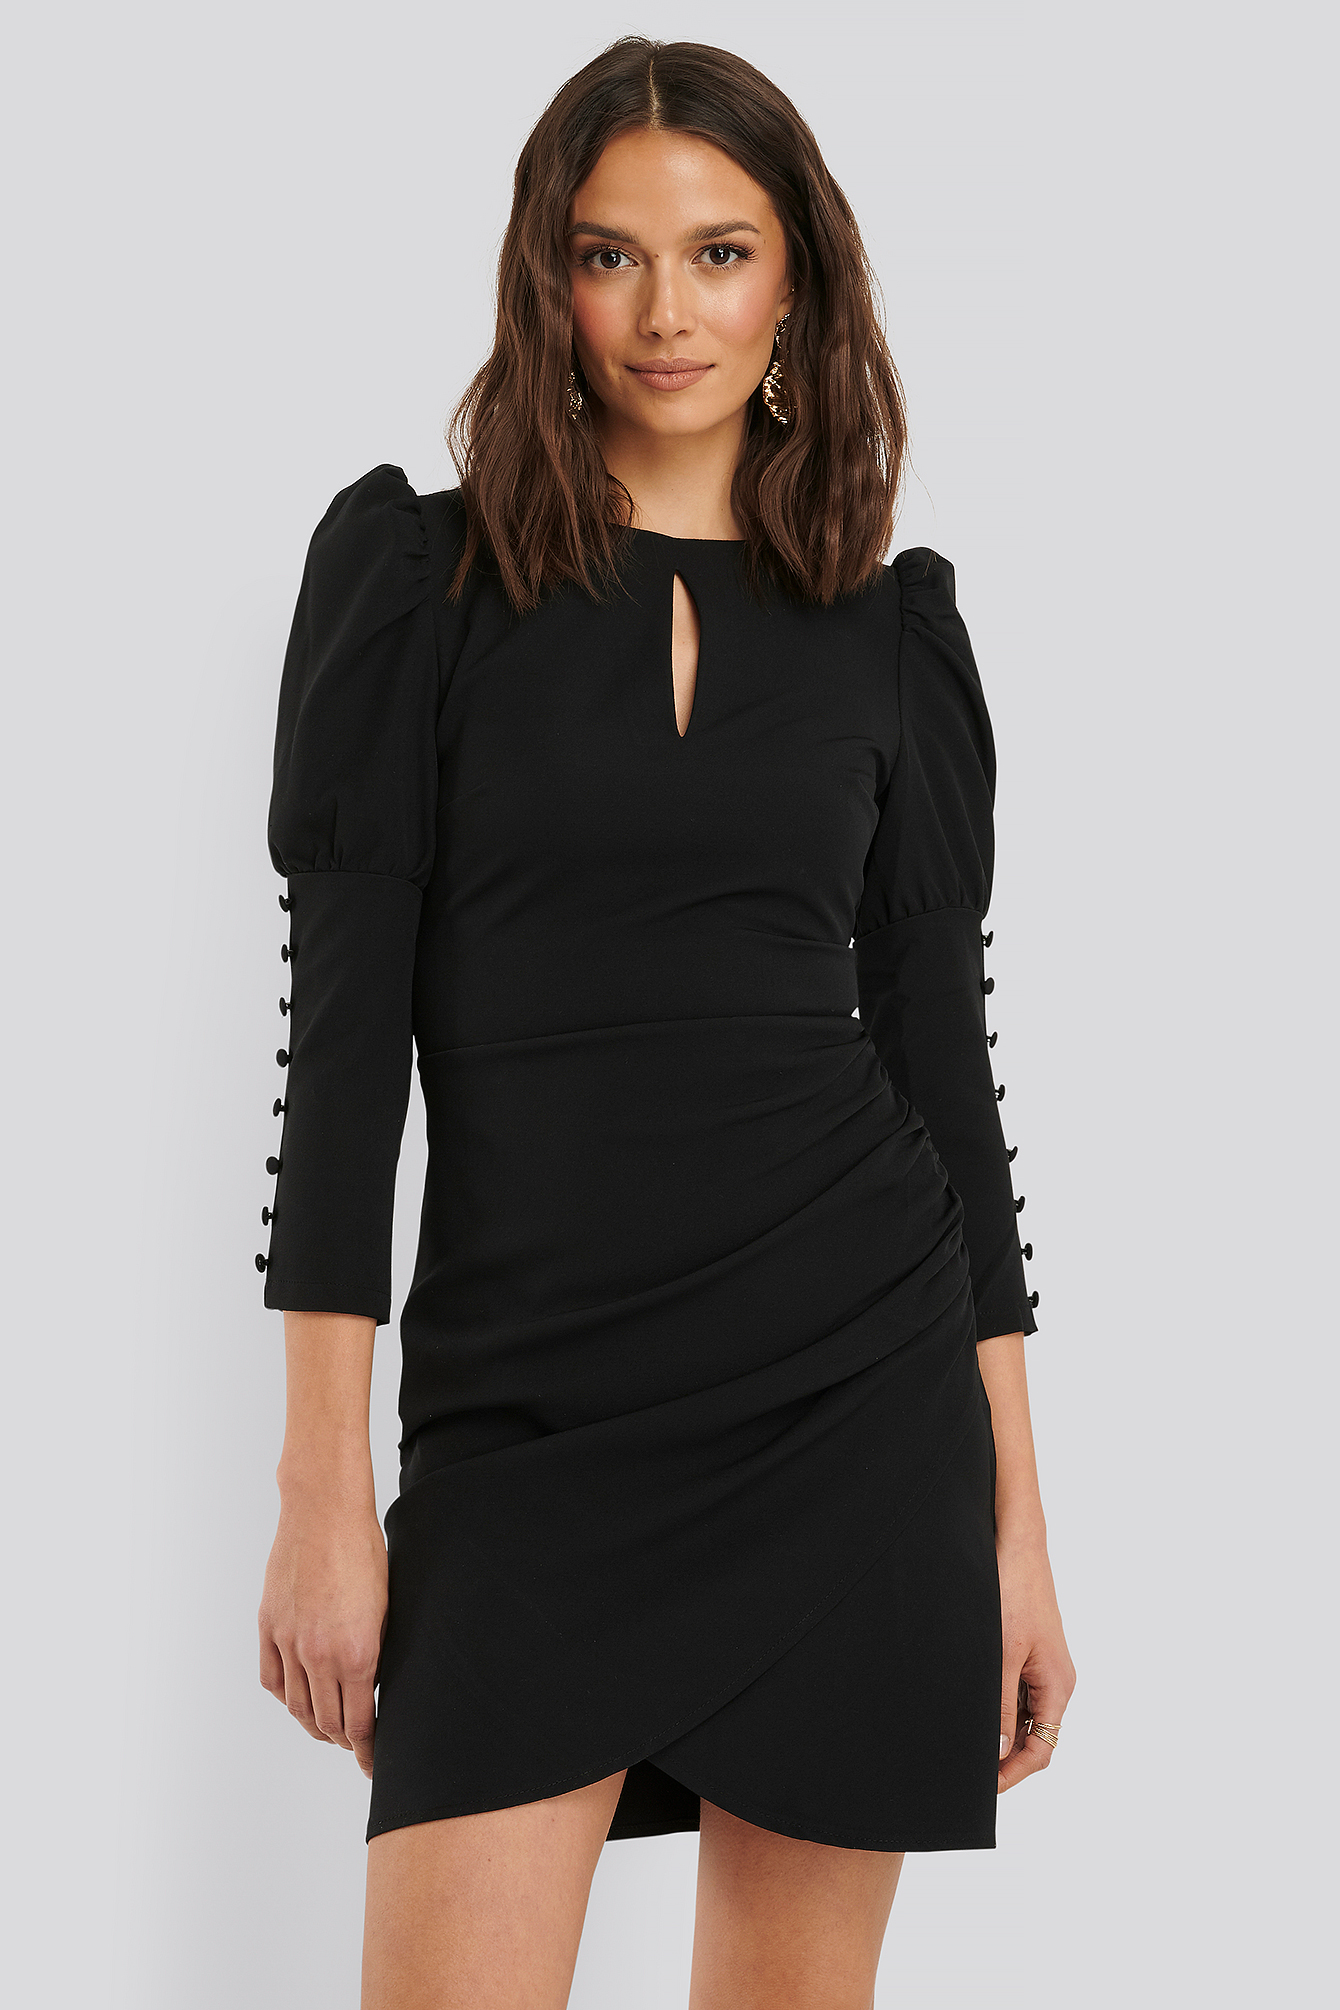 Black 3/4 Button Sleeve Mini Dress